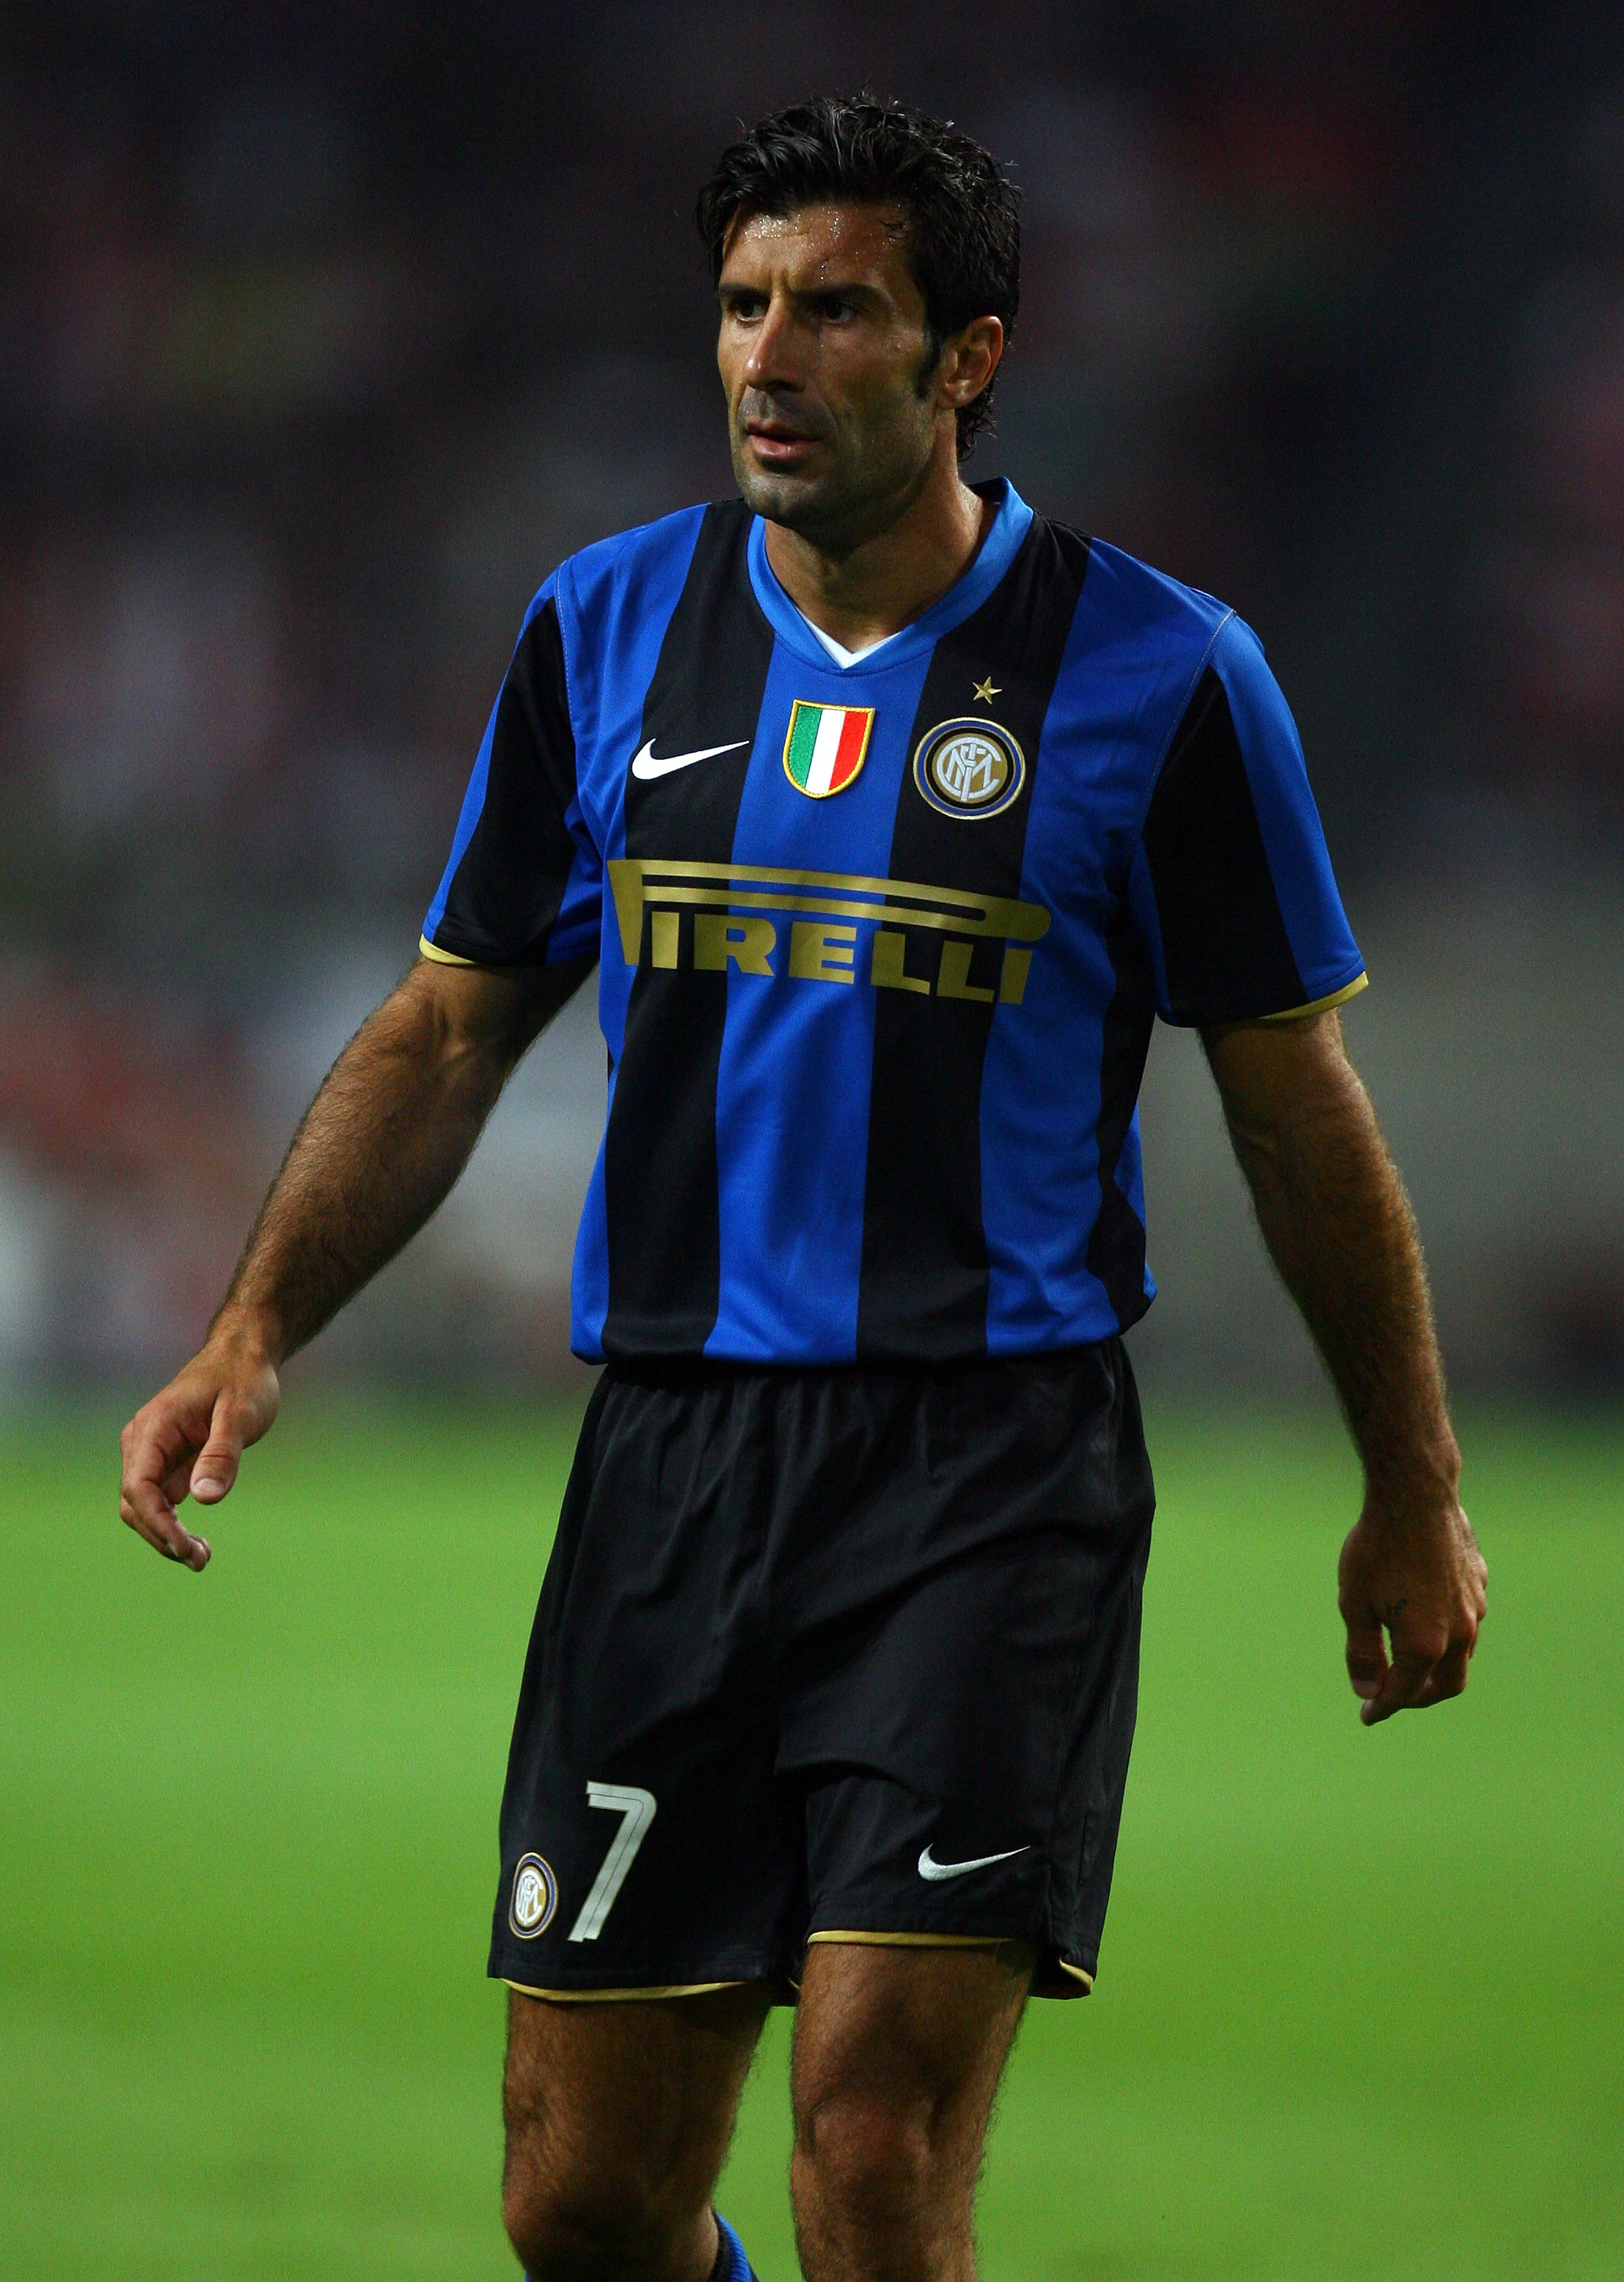 AMSTERDAM, NETHERLANDS - AUGUST 09:  Luis Figo of Inter Milan in action during the Amsterdam Tournament match between Ajax and Inter Milan at the Amsterdam Arena on August 9, 2008 in Amsterdam, Netherlands.  (Photo by Ian Walton/Getty Images)